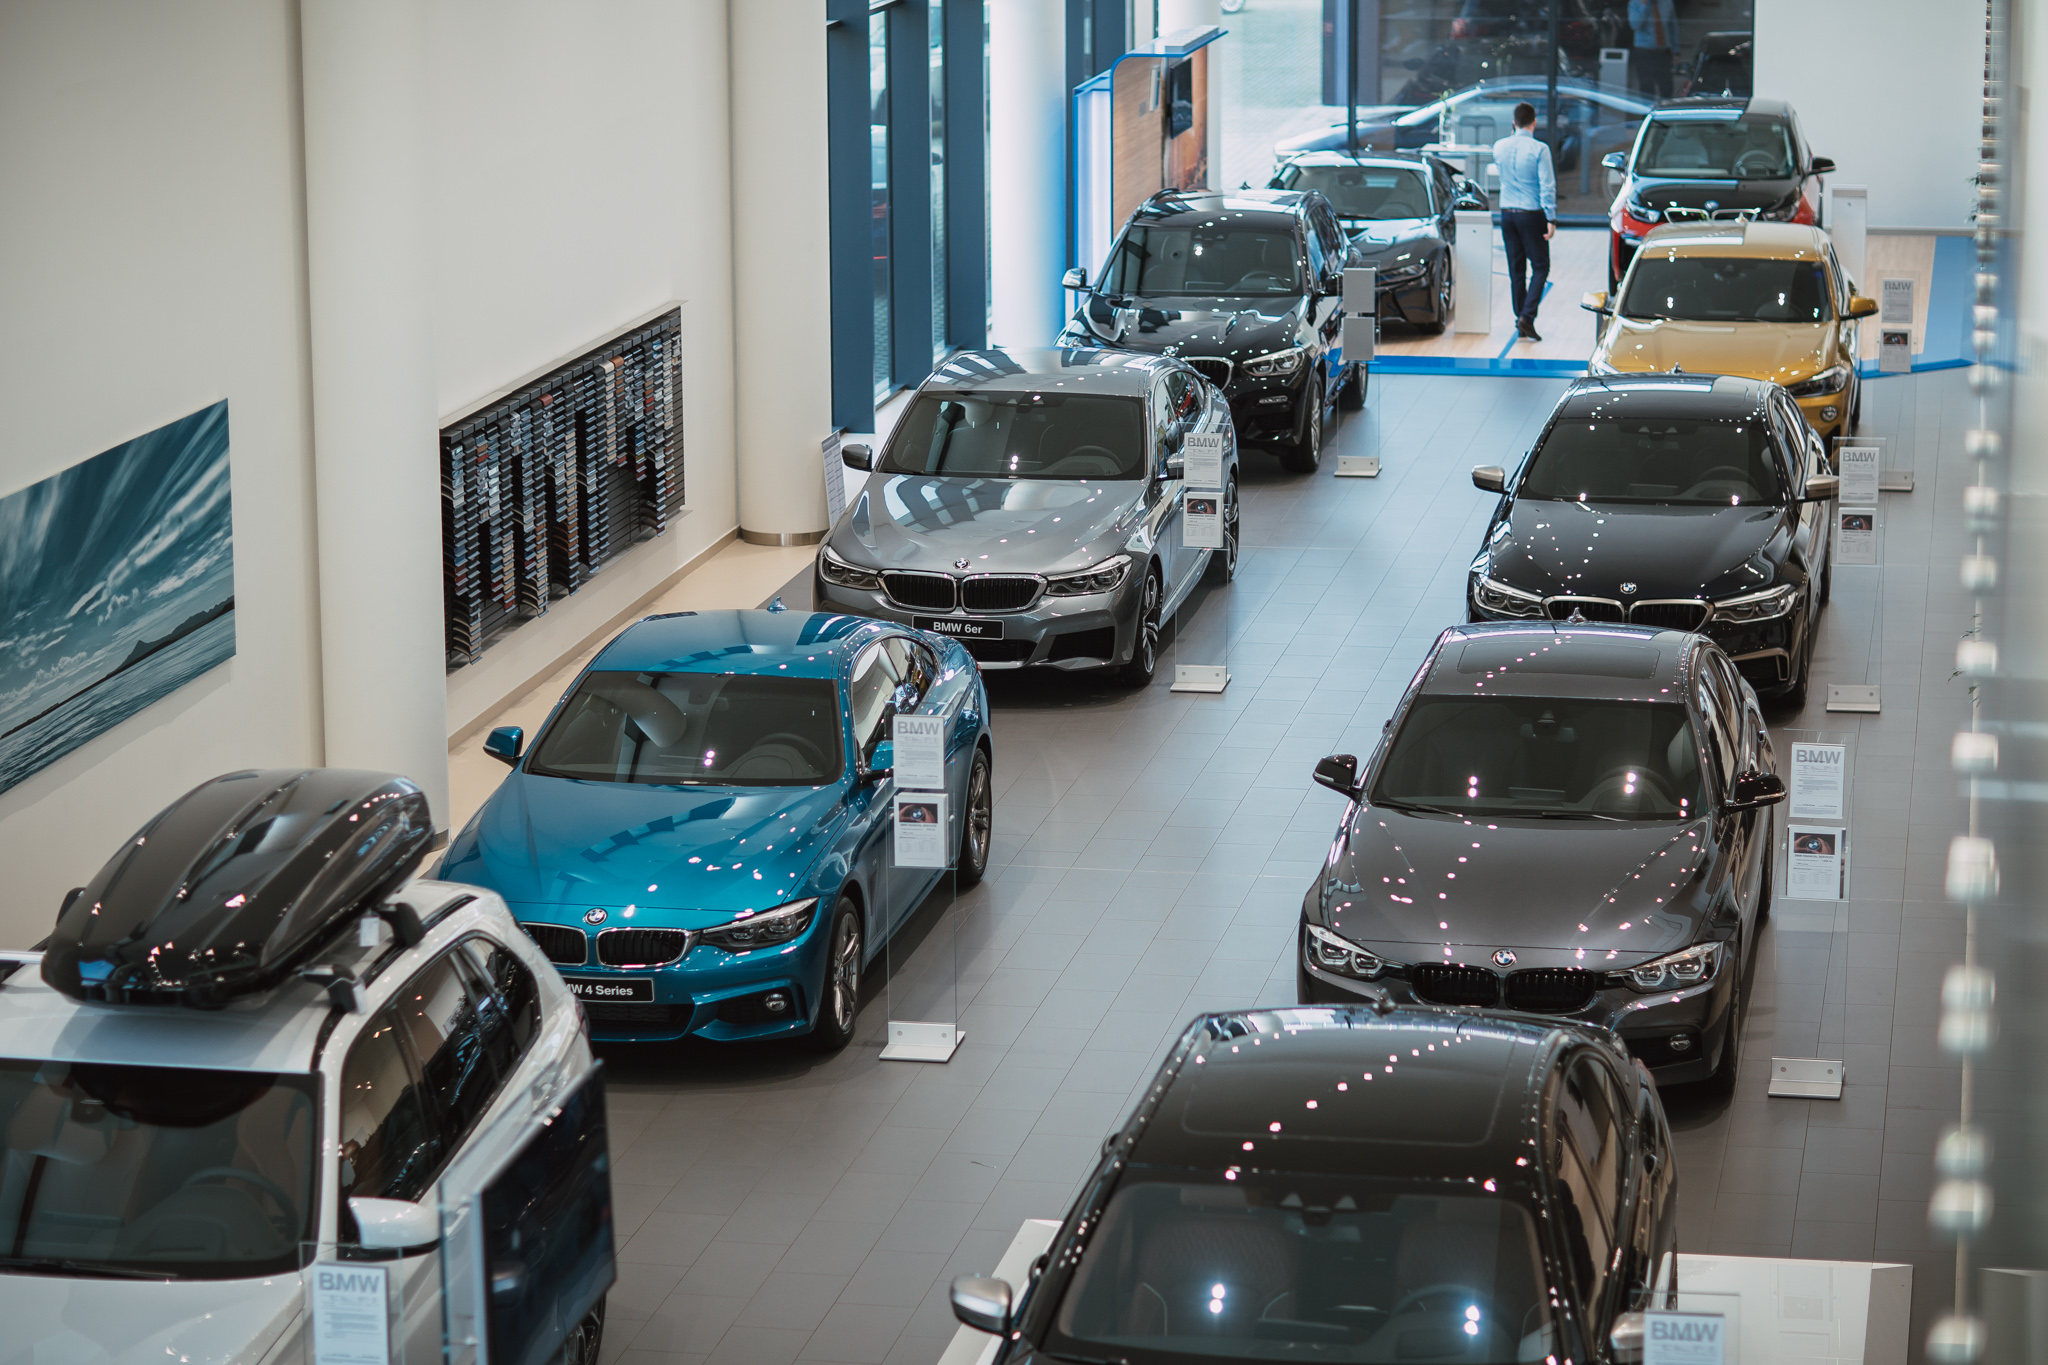 Slovenia's TPV signs major deal with BMW for car parts delivery